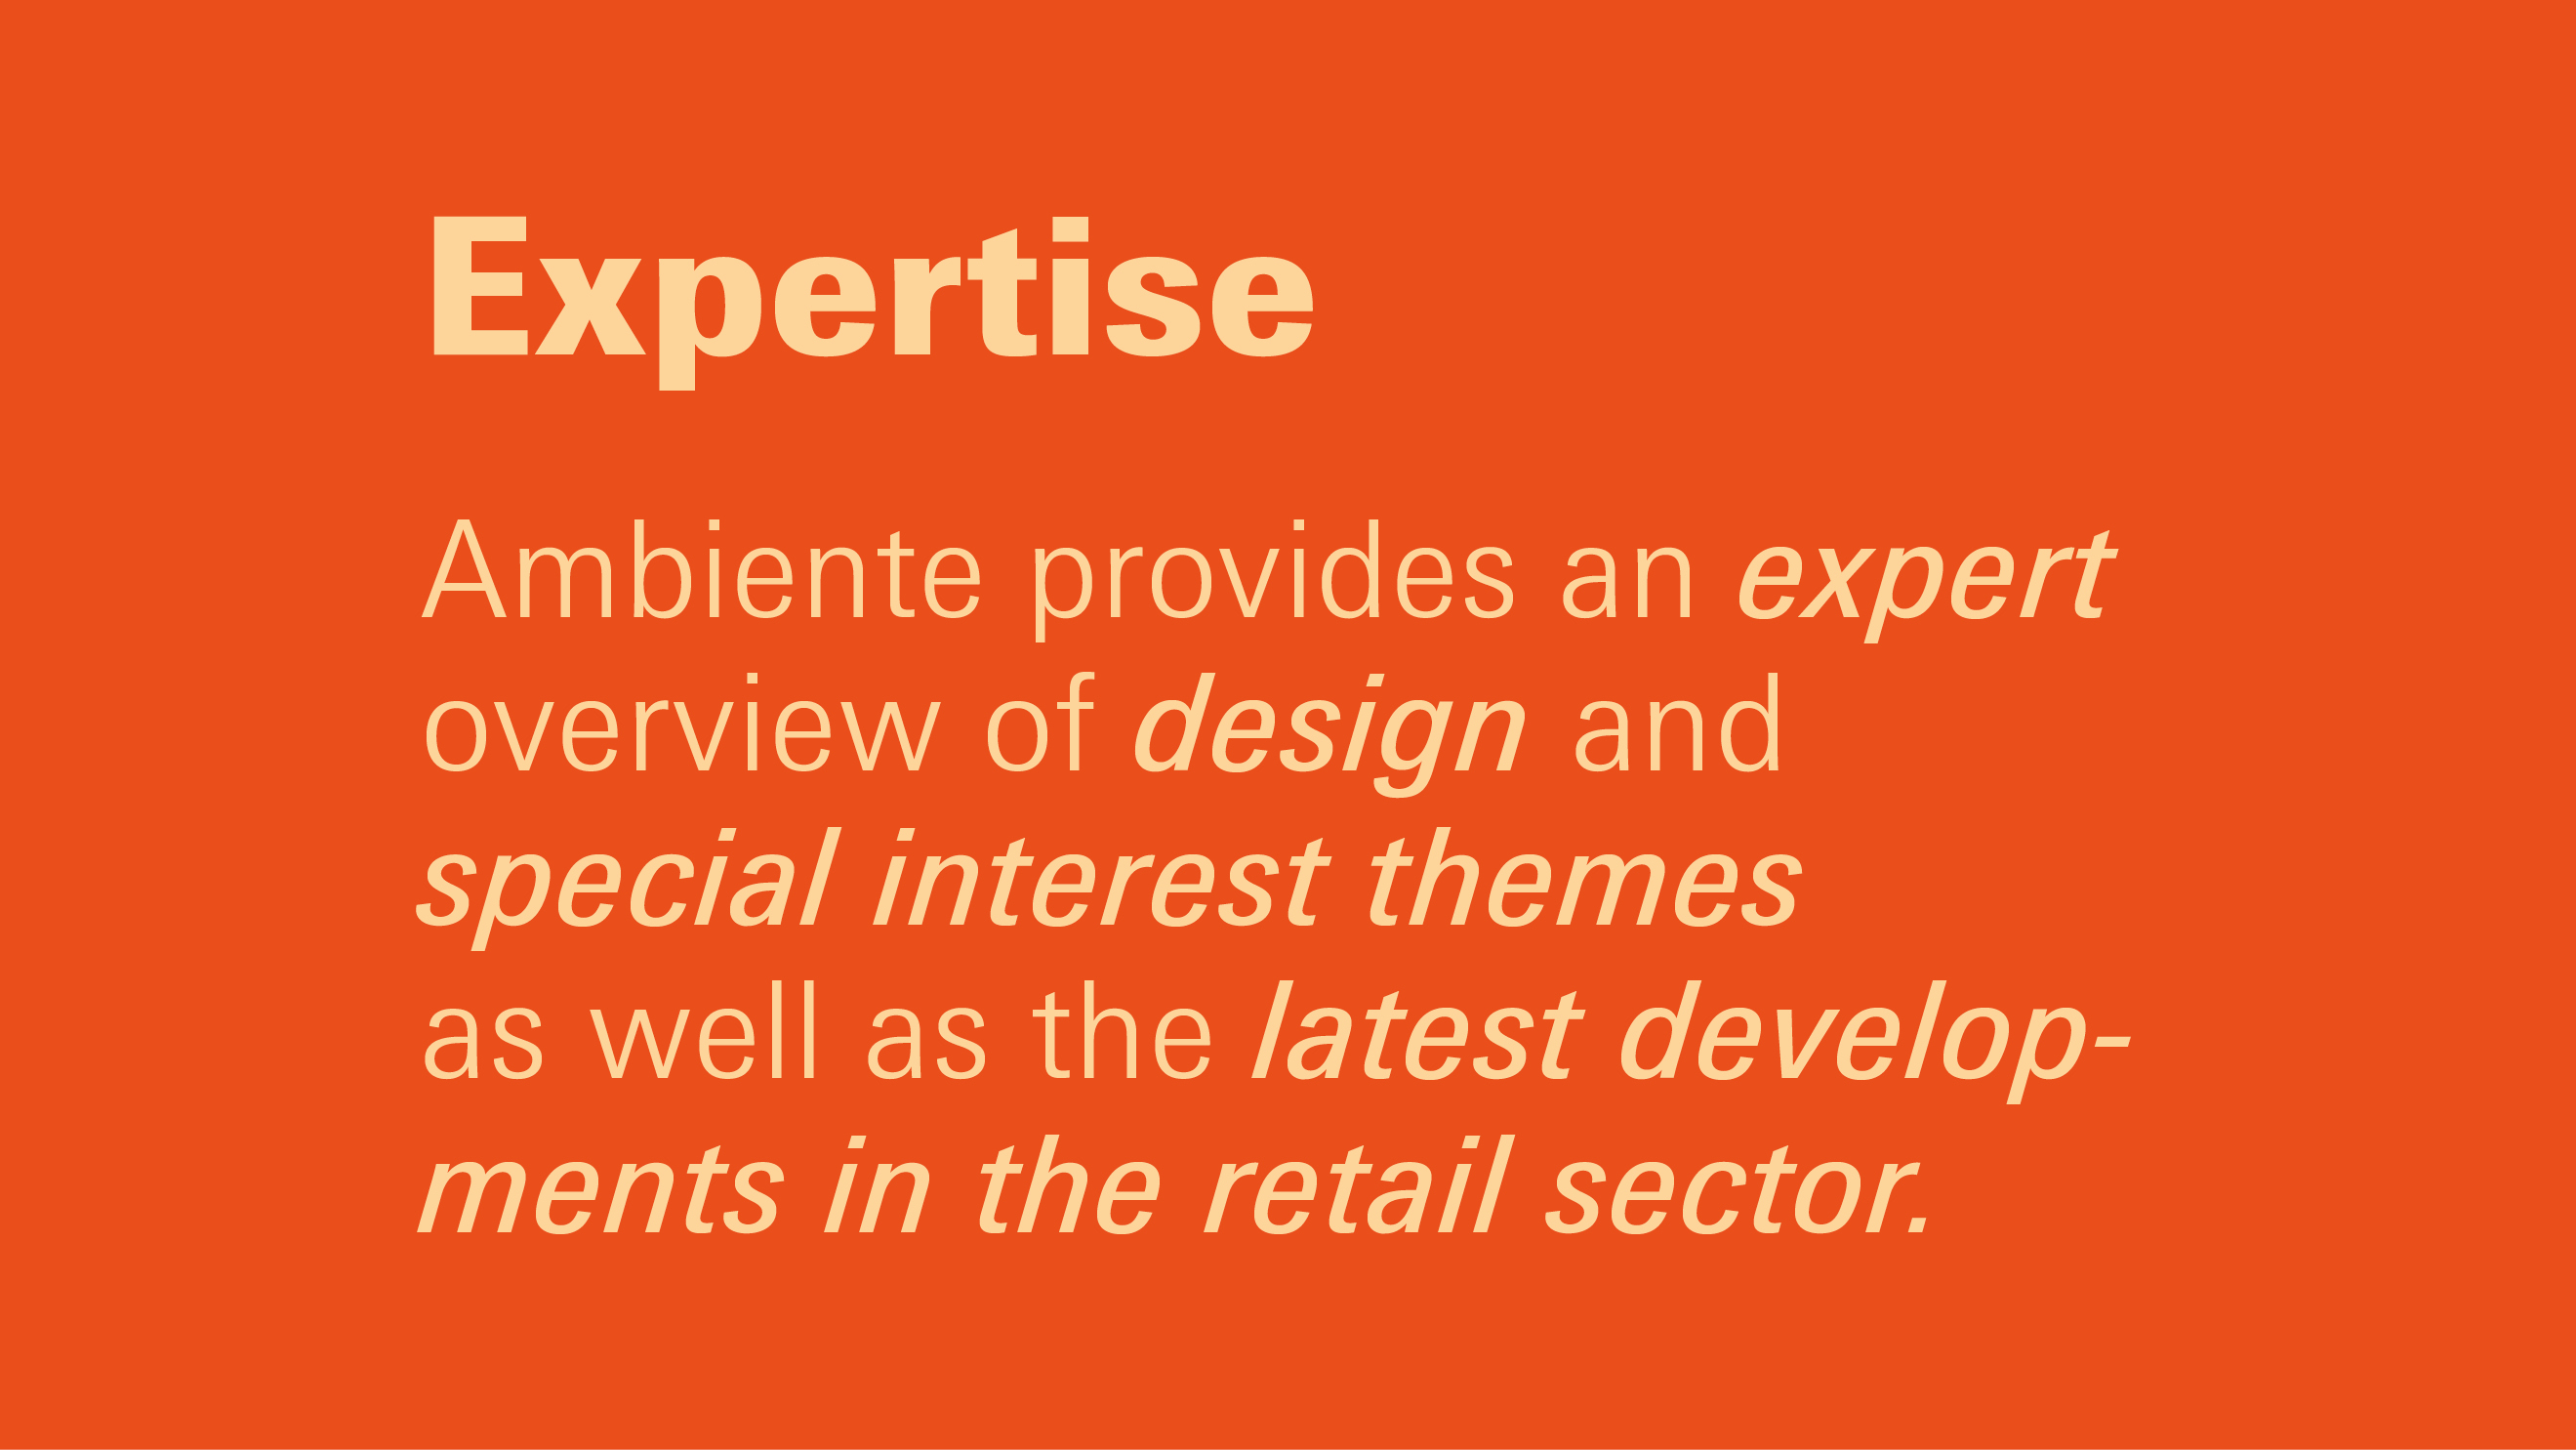 Advantages Ambiente: Expertise at Ambiente